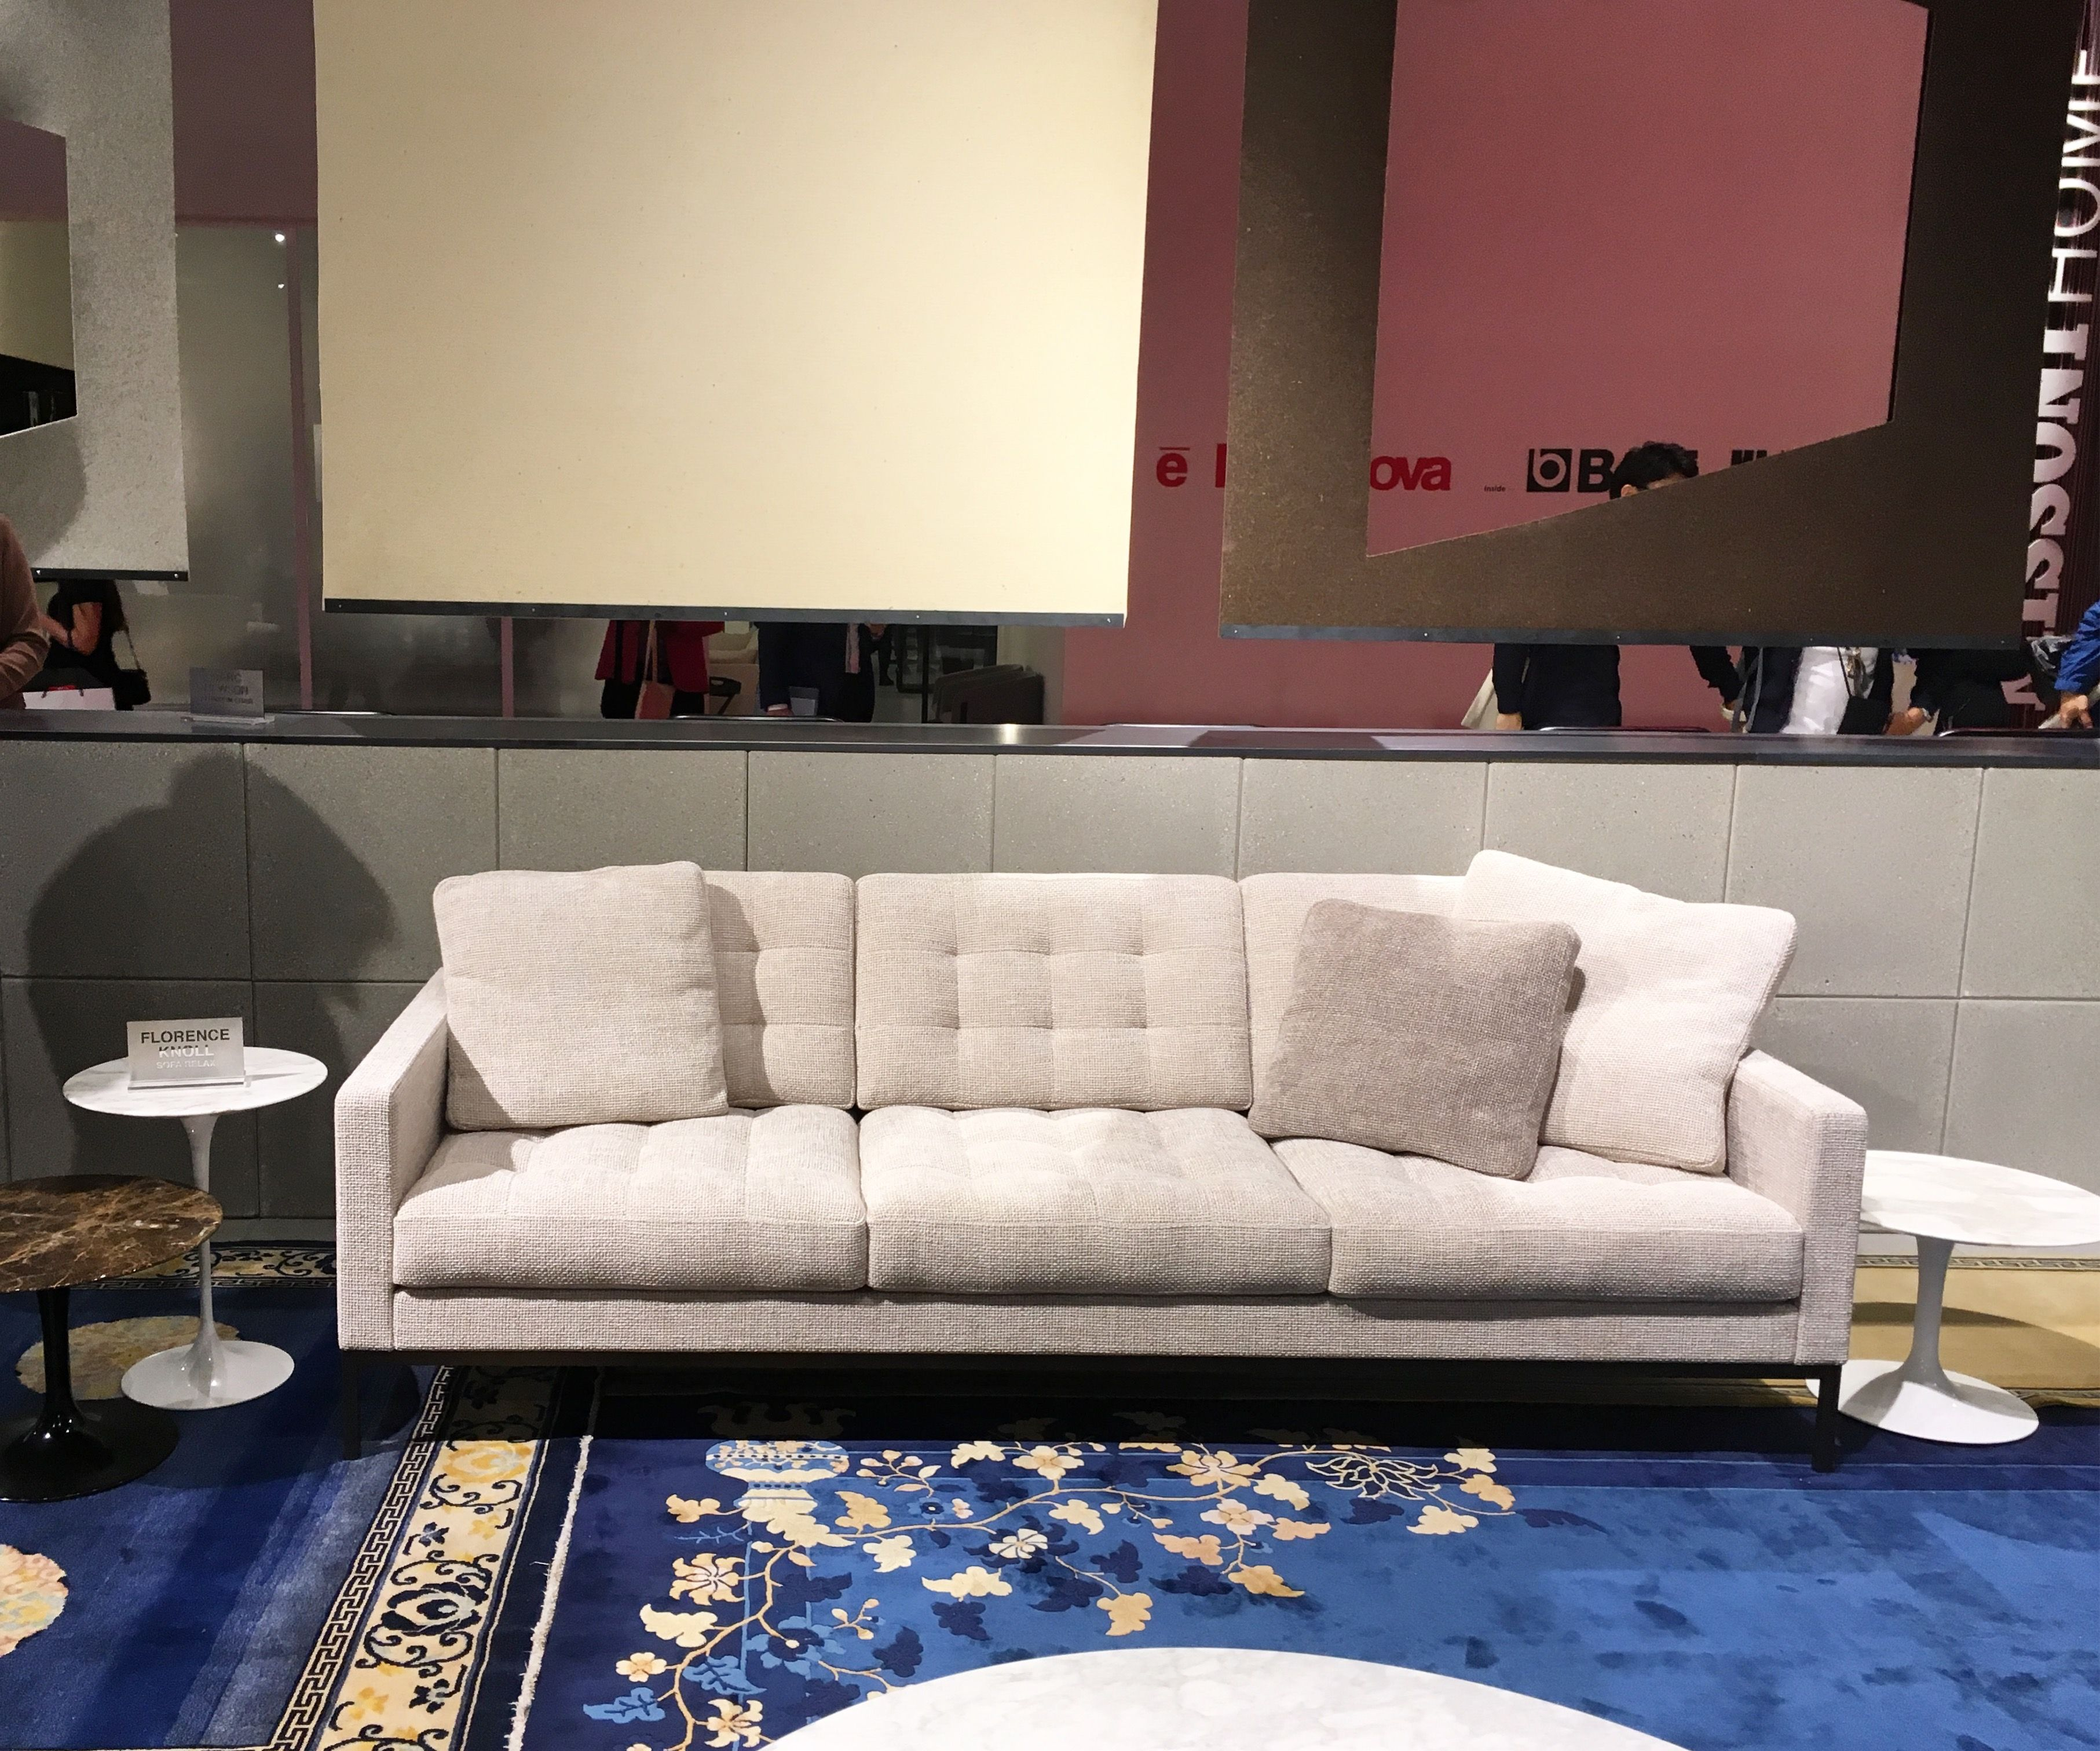 Astonishing Florence Knoll Relax Sofa At Milan Salone Del Mobile 2018 Download Free Architecture Designs Scobabritishbridgeorg